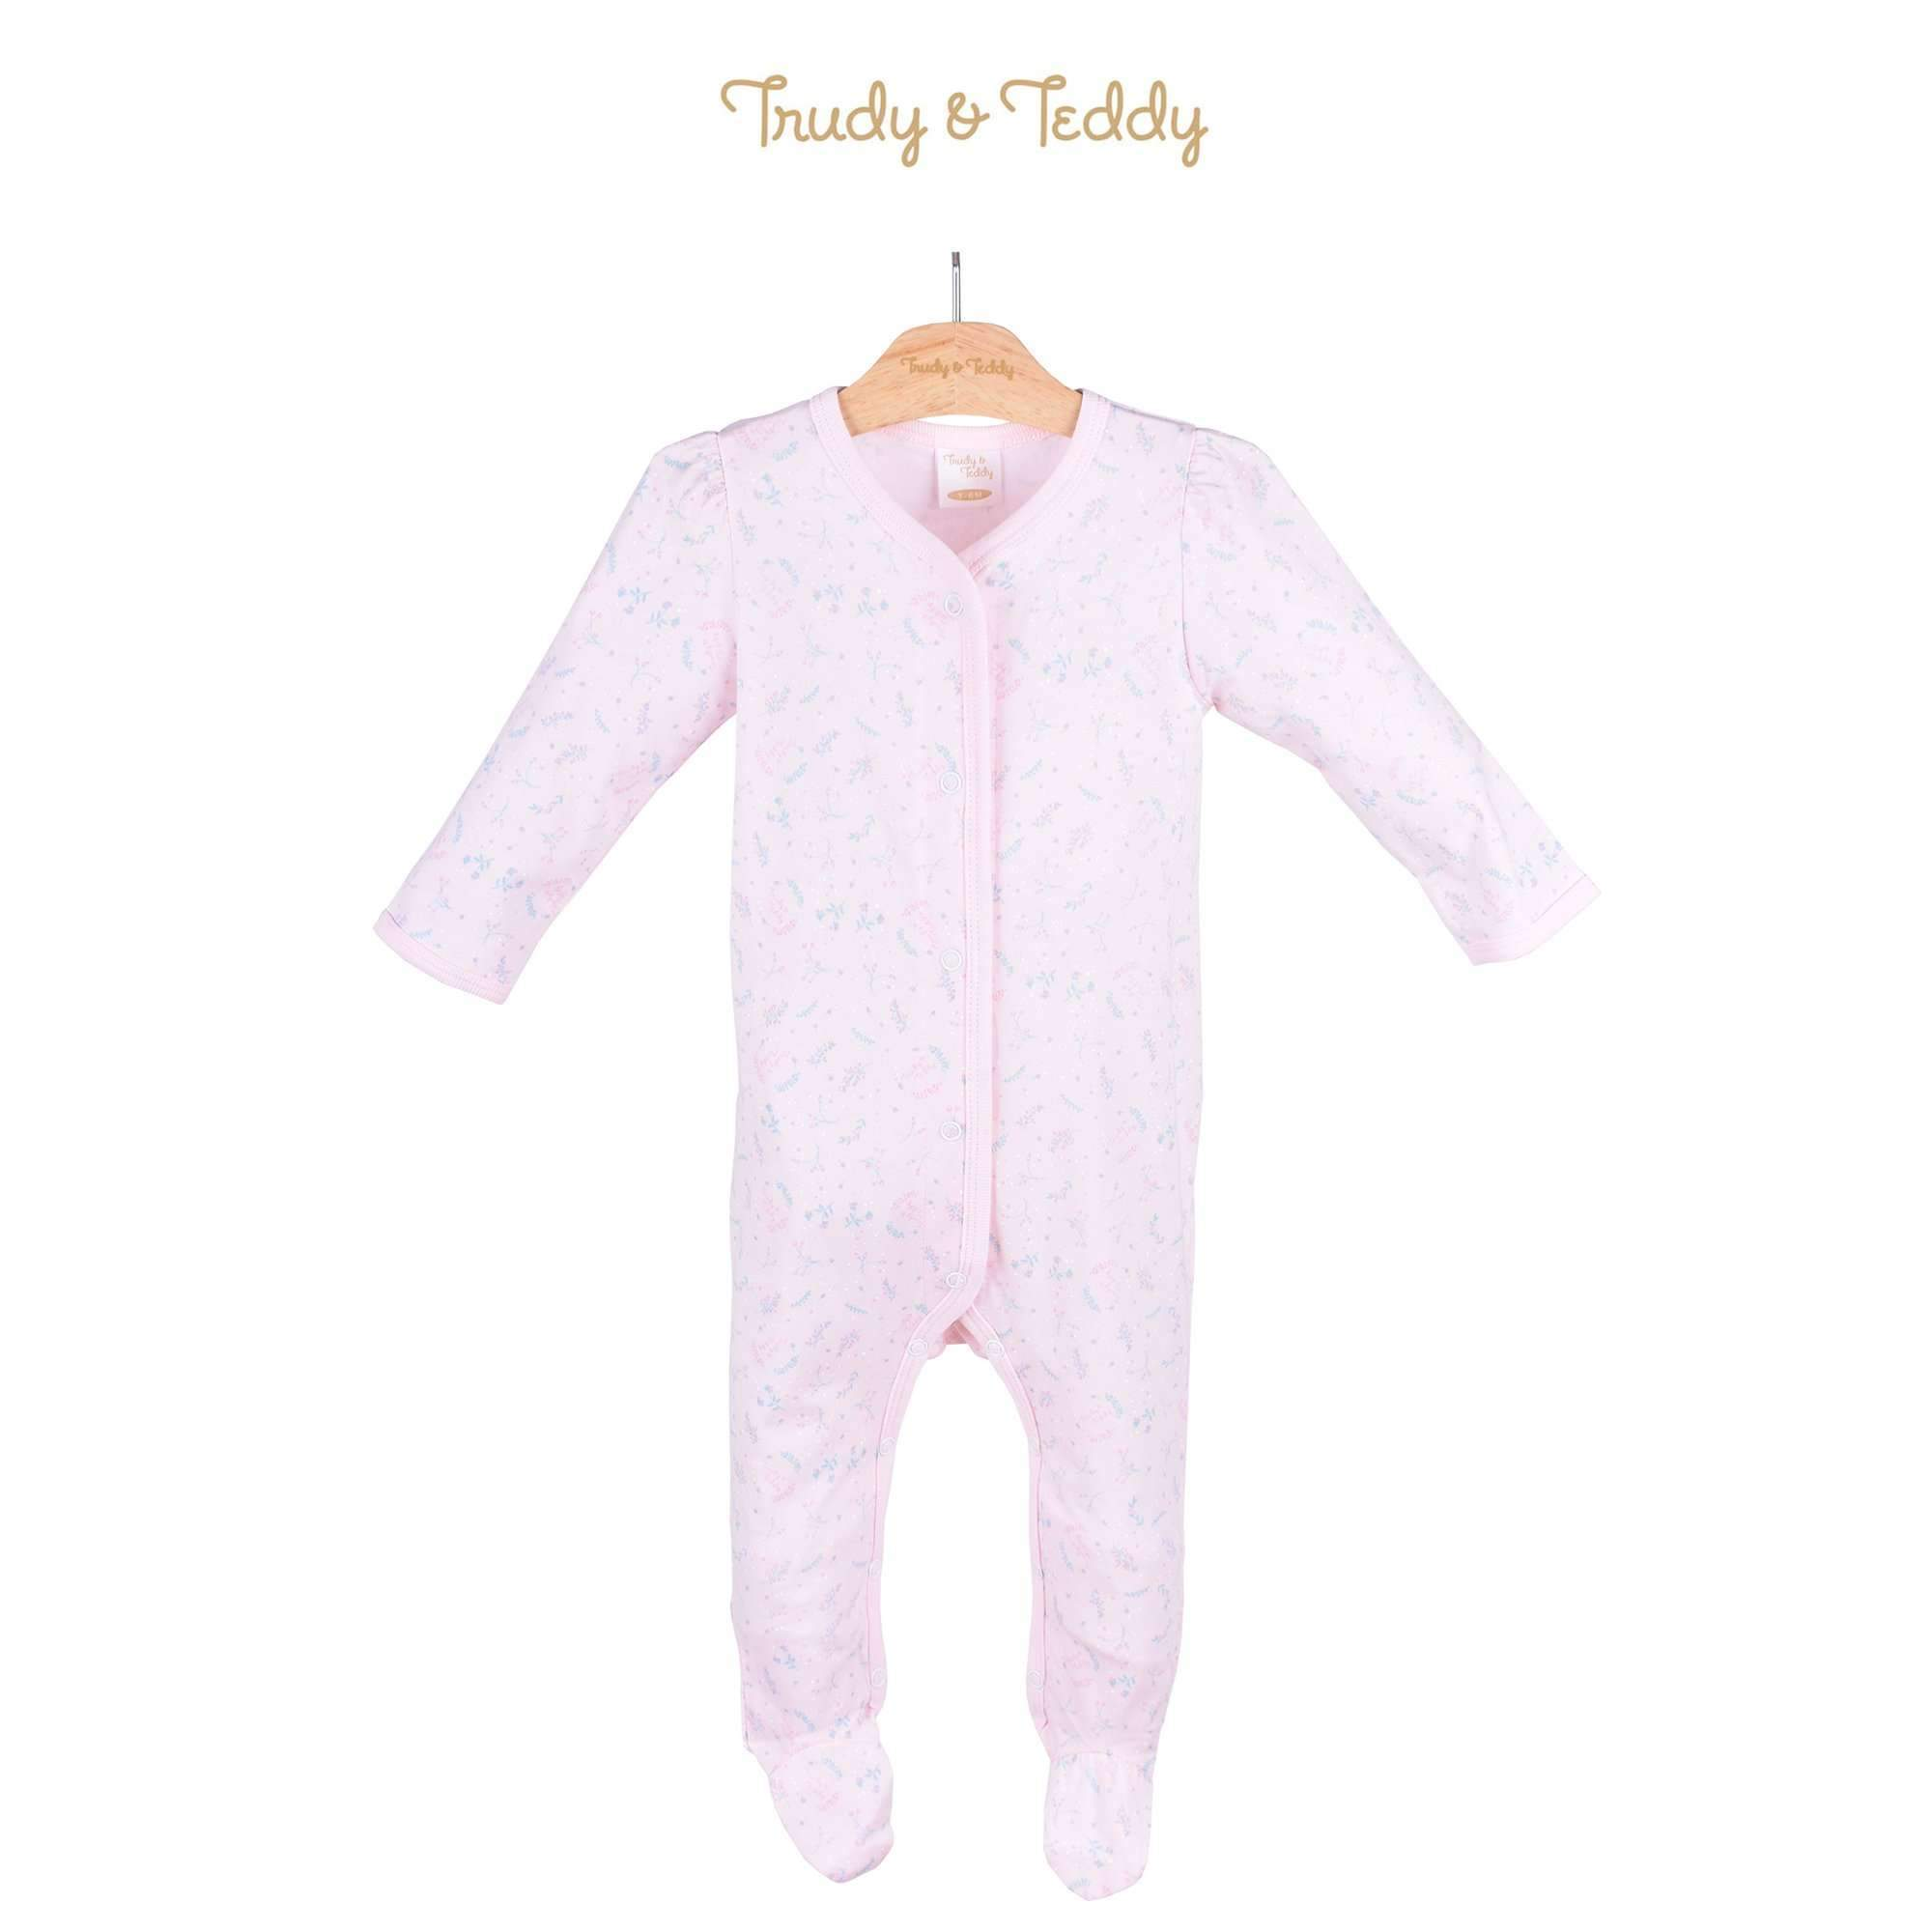 Trudy & Teddy Baby Girl Long Sleeve Romper 820022-362 : Buy Trudy & Teddy online at CMG.MY